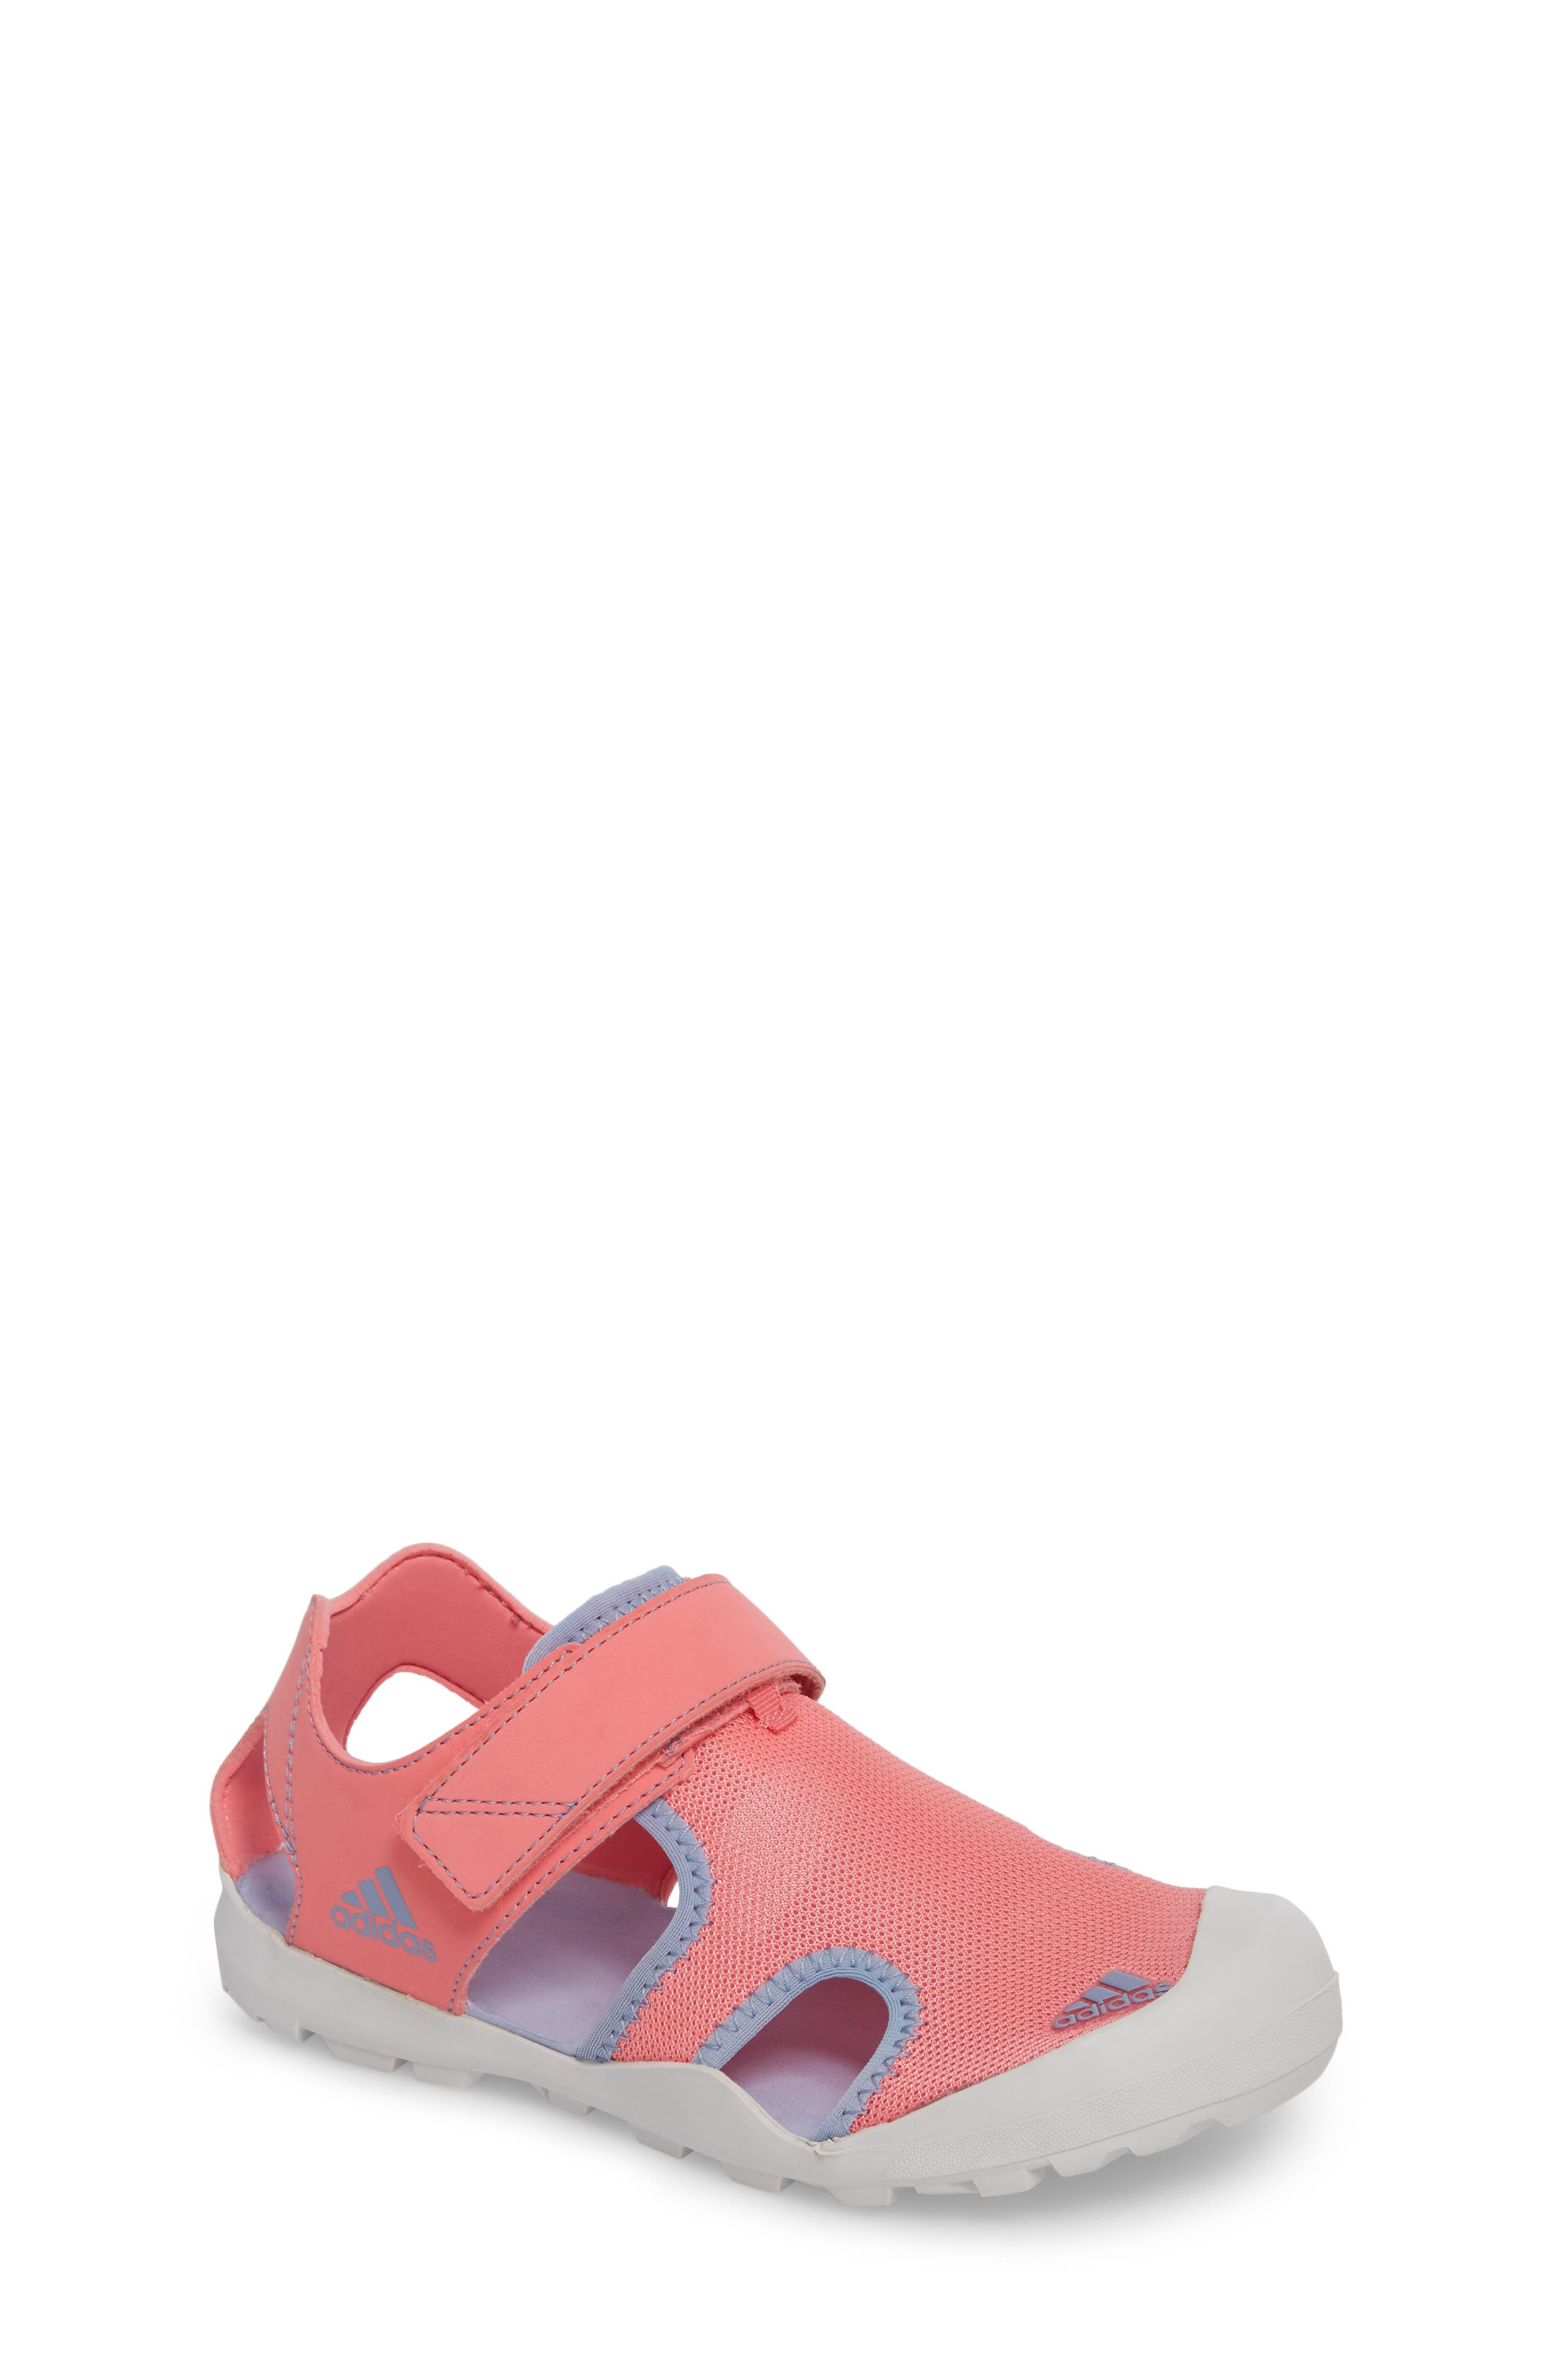 adidas 'Captain Toey' Sandal (Toddler, Little Kid & Big Kid)